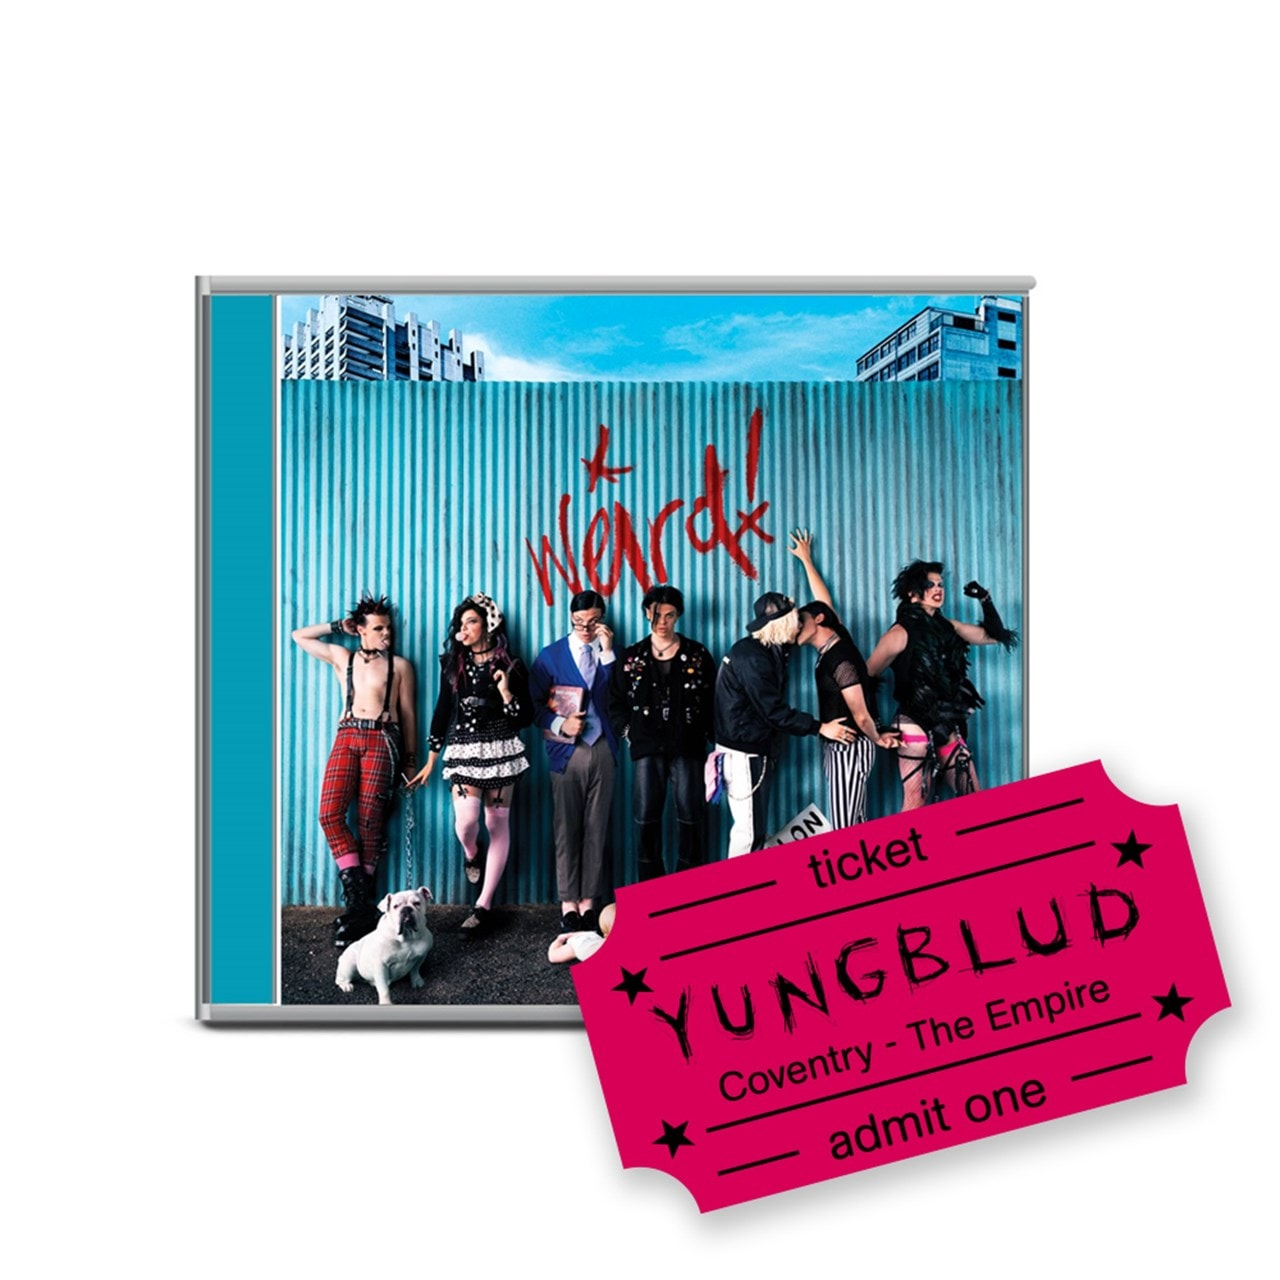 Yungblud - Weird! - CD & Coventry Empire e-Ticket - 1